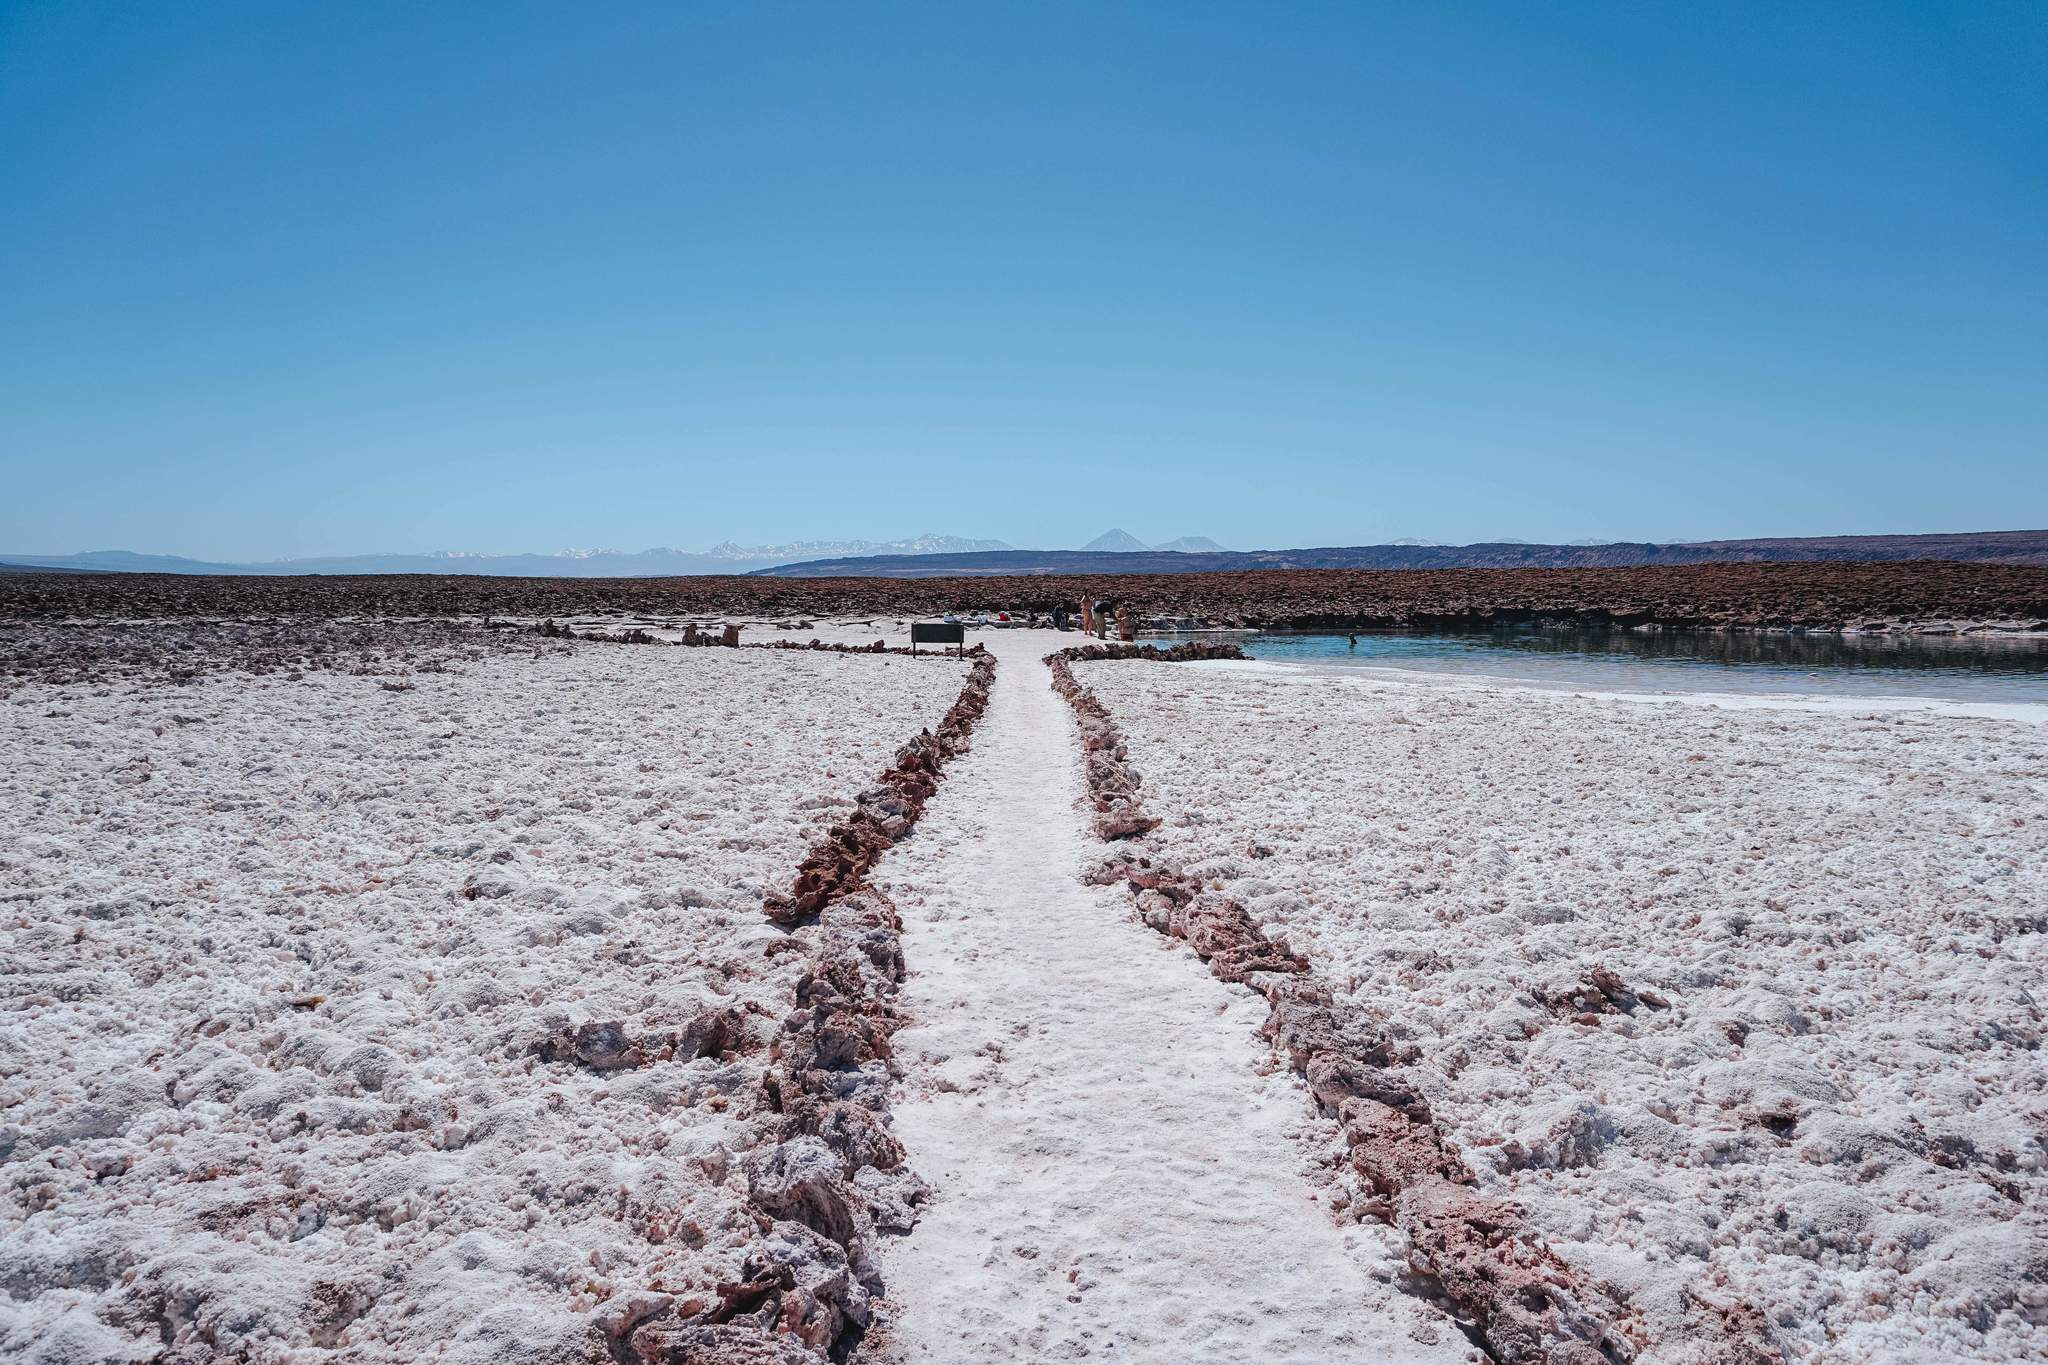 Self-driving guide-to-Atacama-Desert-itinerary-must-see-spots-16